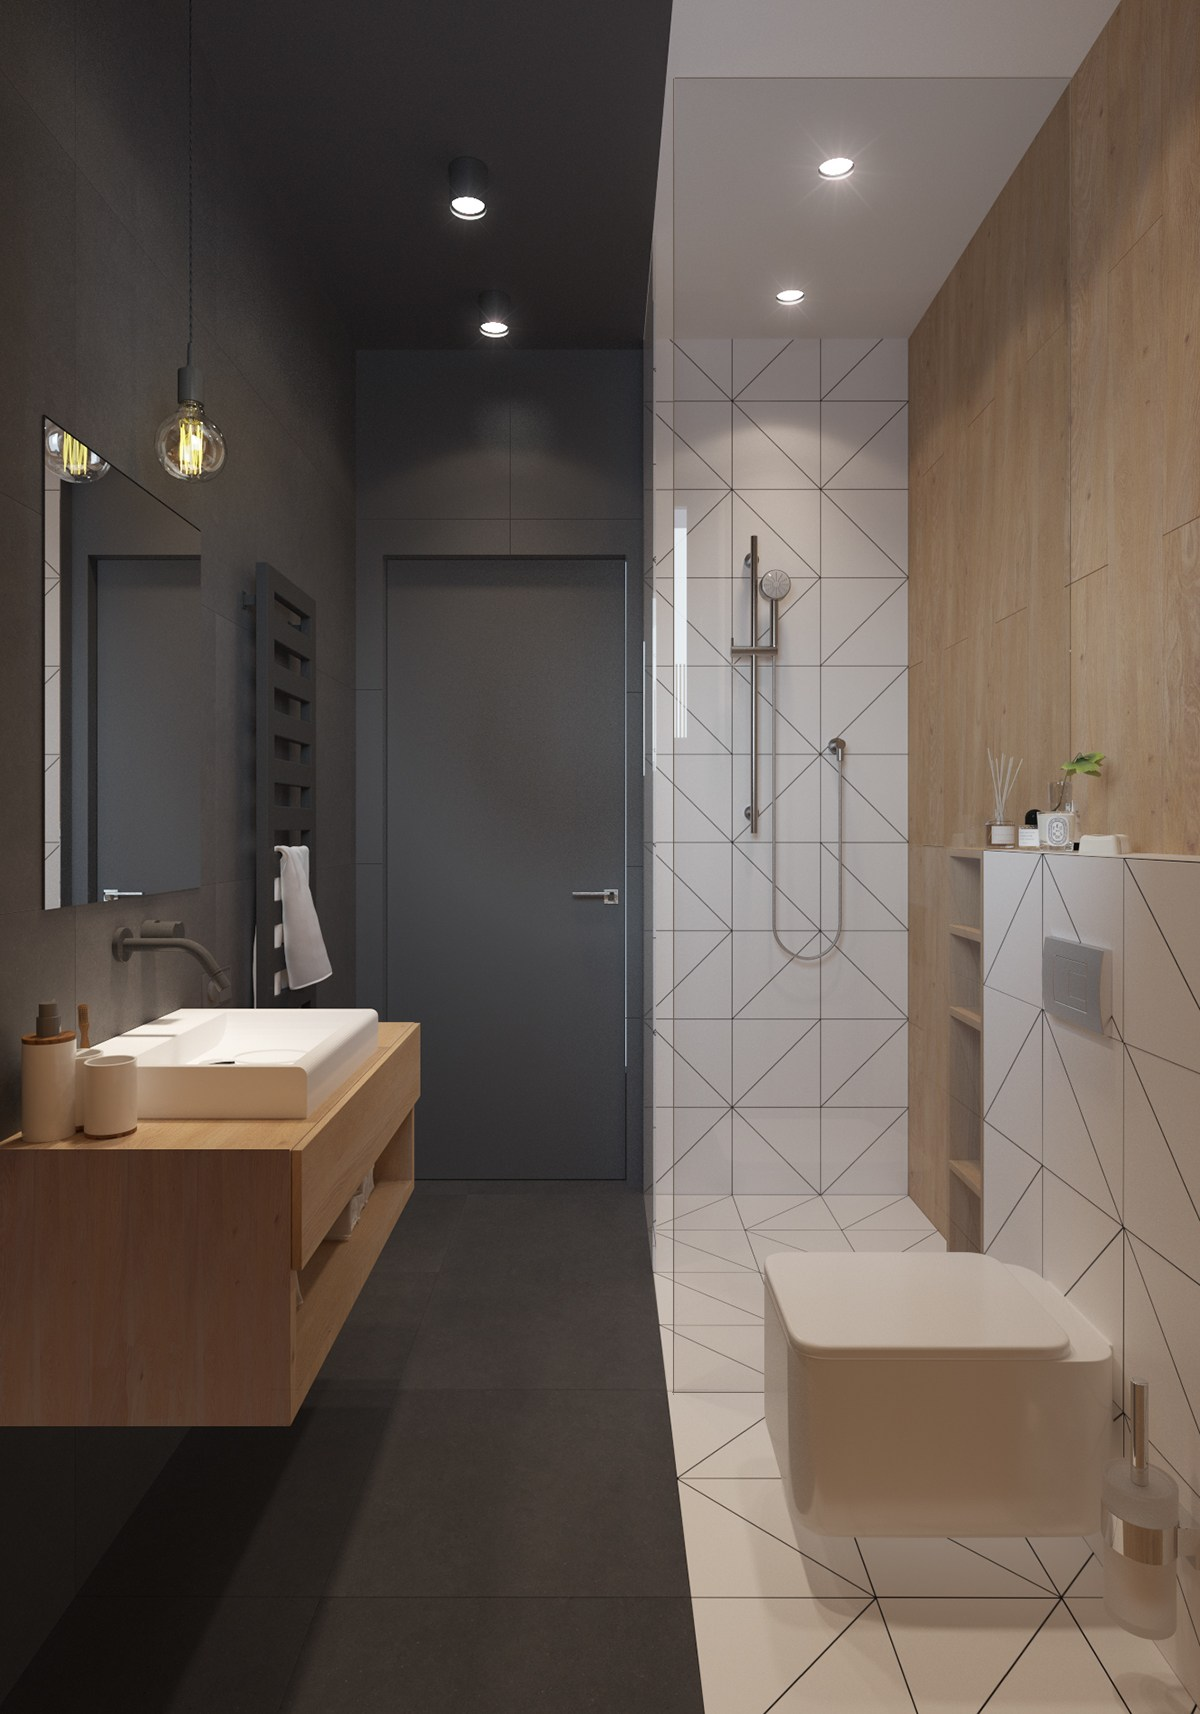 Today 2020 09 04 Surprising Bathroom Interior Design Best Ideas For Us